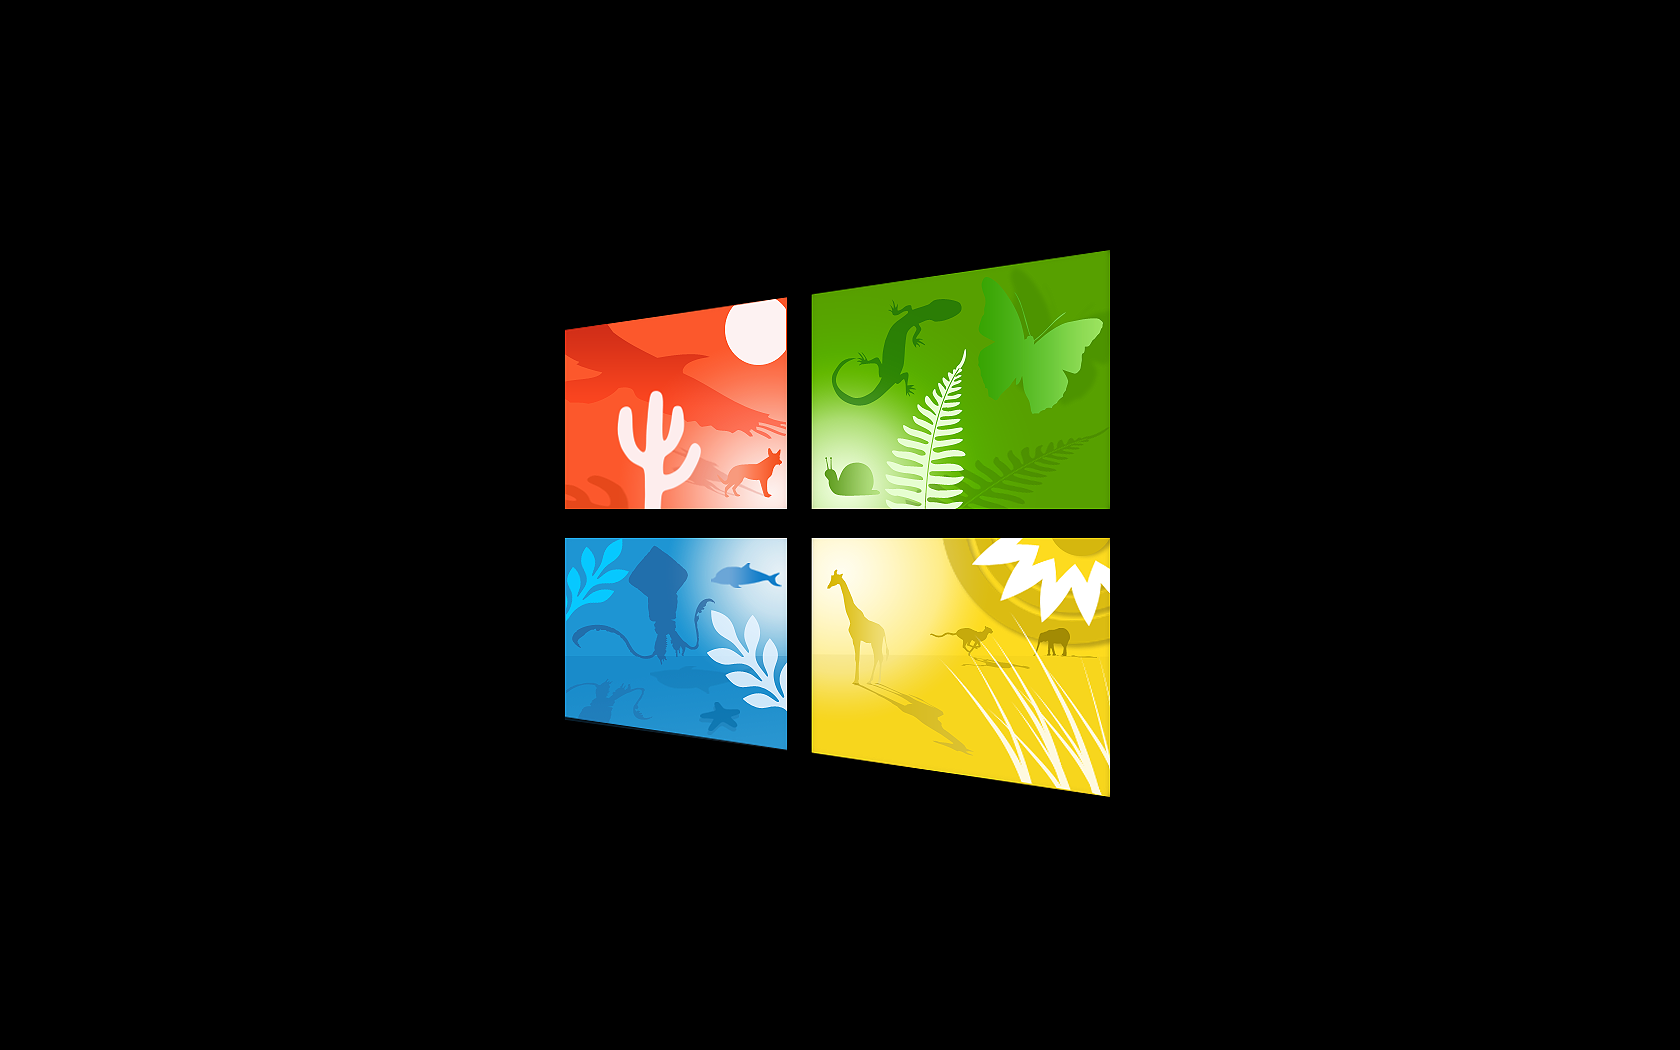 windows_8_wallpaper_scenic_logo_by_fraktyl-d591eh1.png